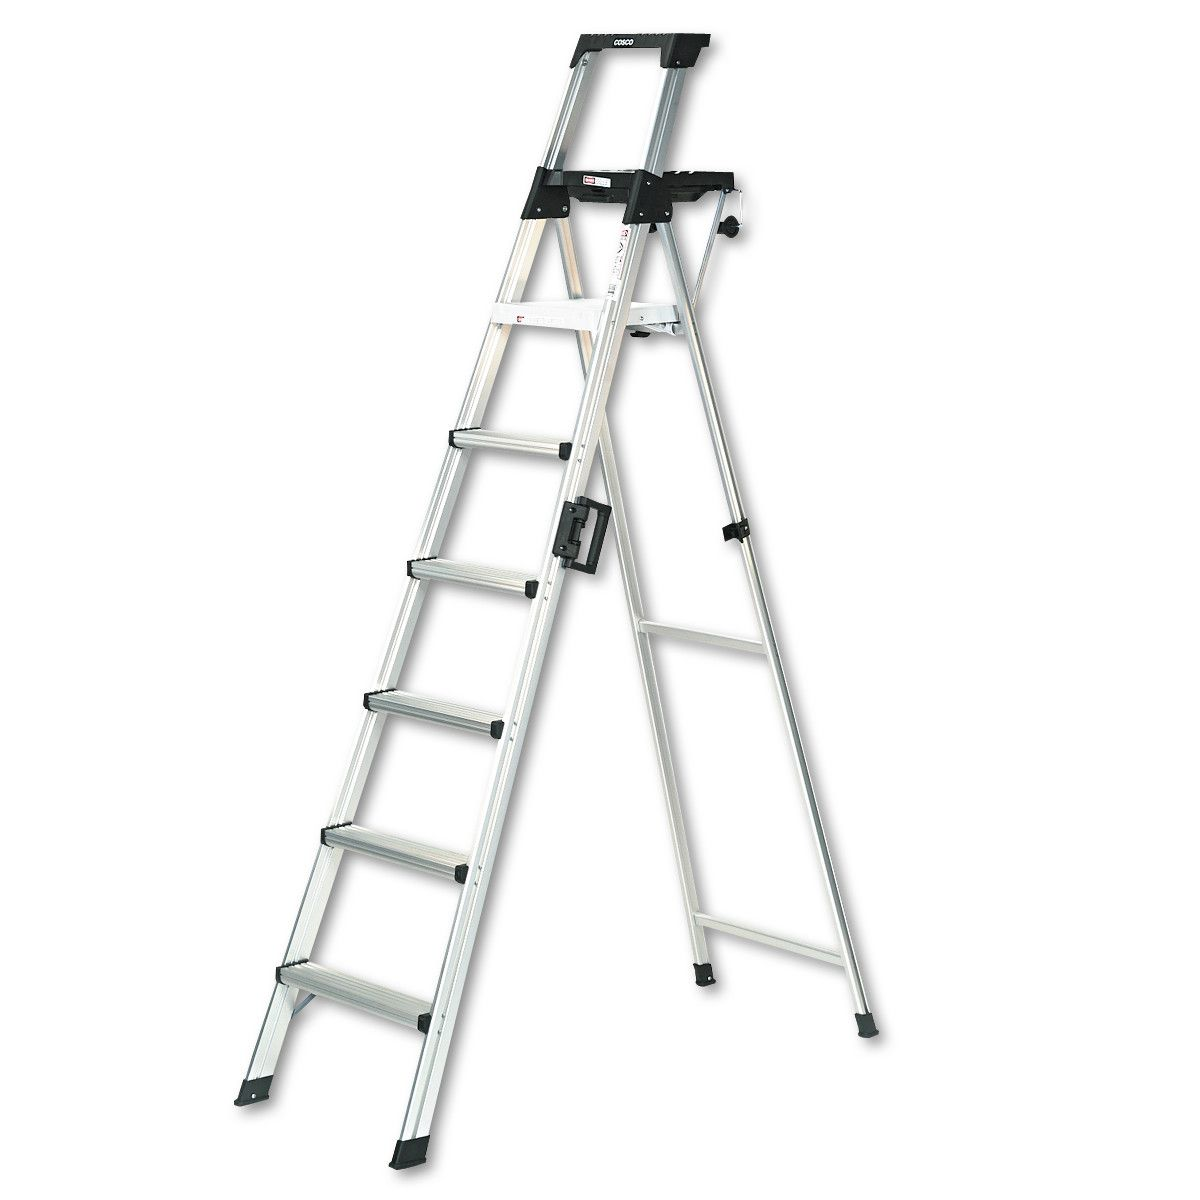 Cosco 8 Ft Signature Series Aluminum Folding Step Ladder With Leg Lock Handle 300 Lb Type Ia Duty Rating Walmart Com Step Ladders Cosco Ladder